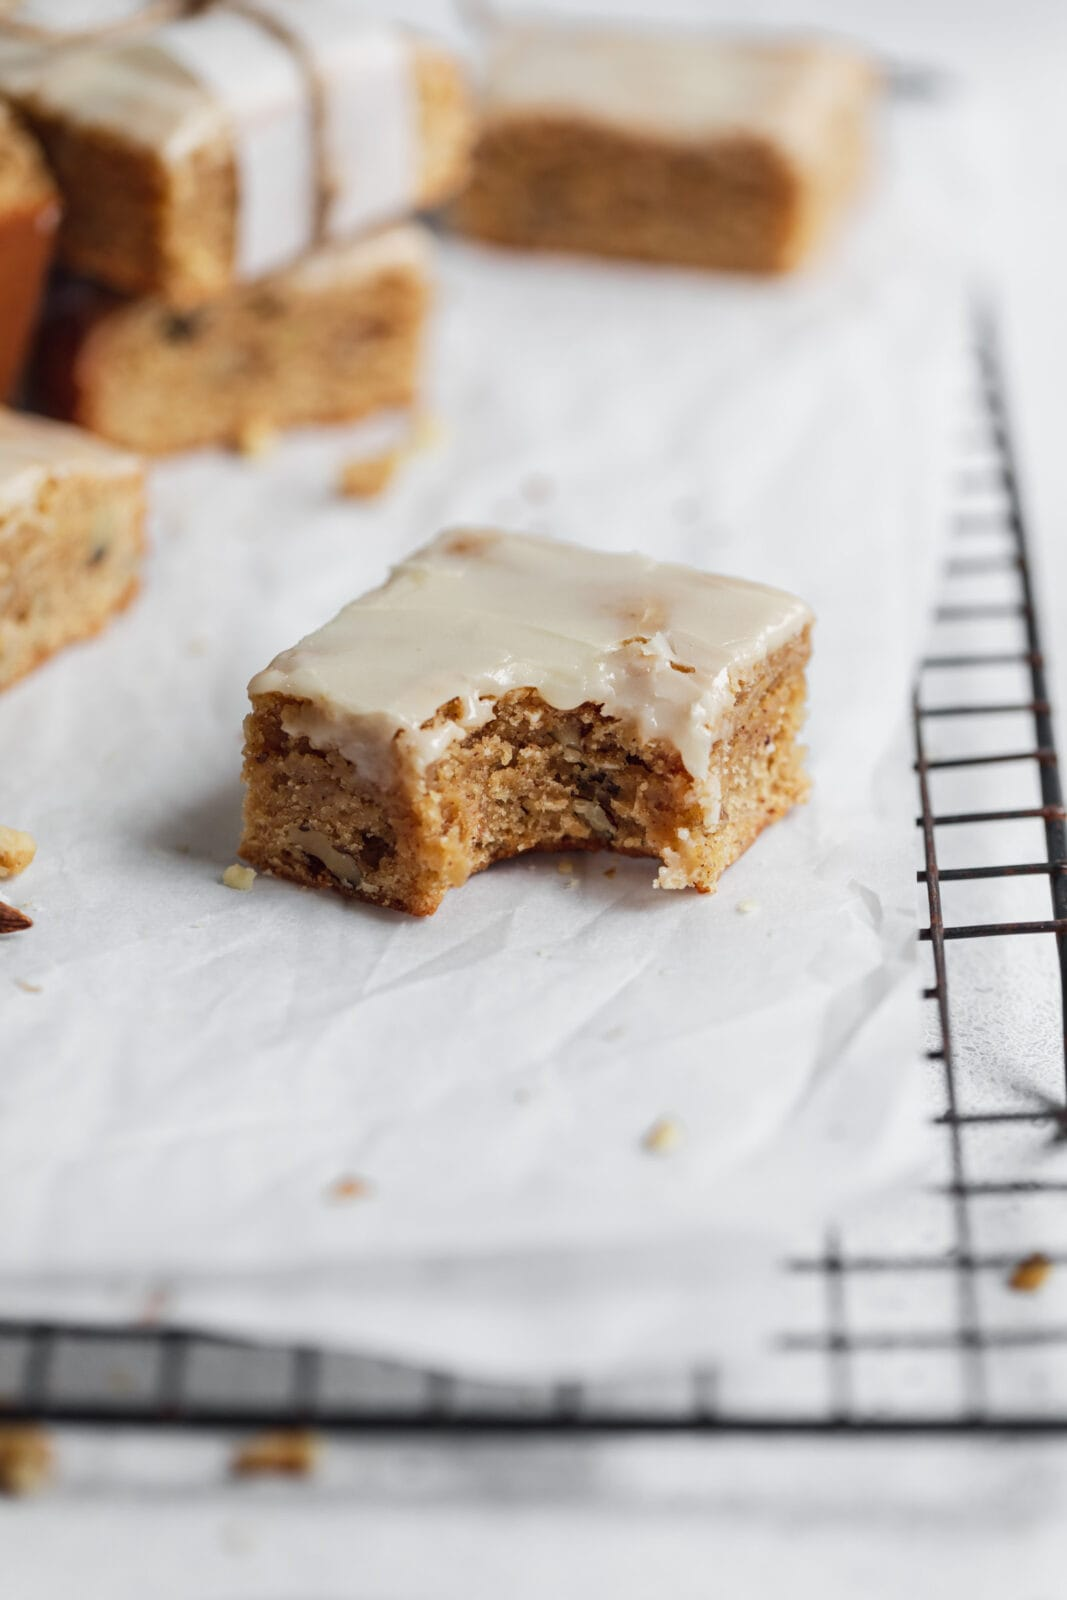 chai blondie with bite taken out